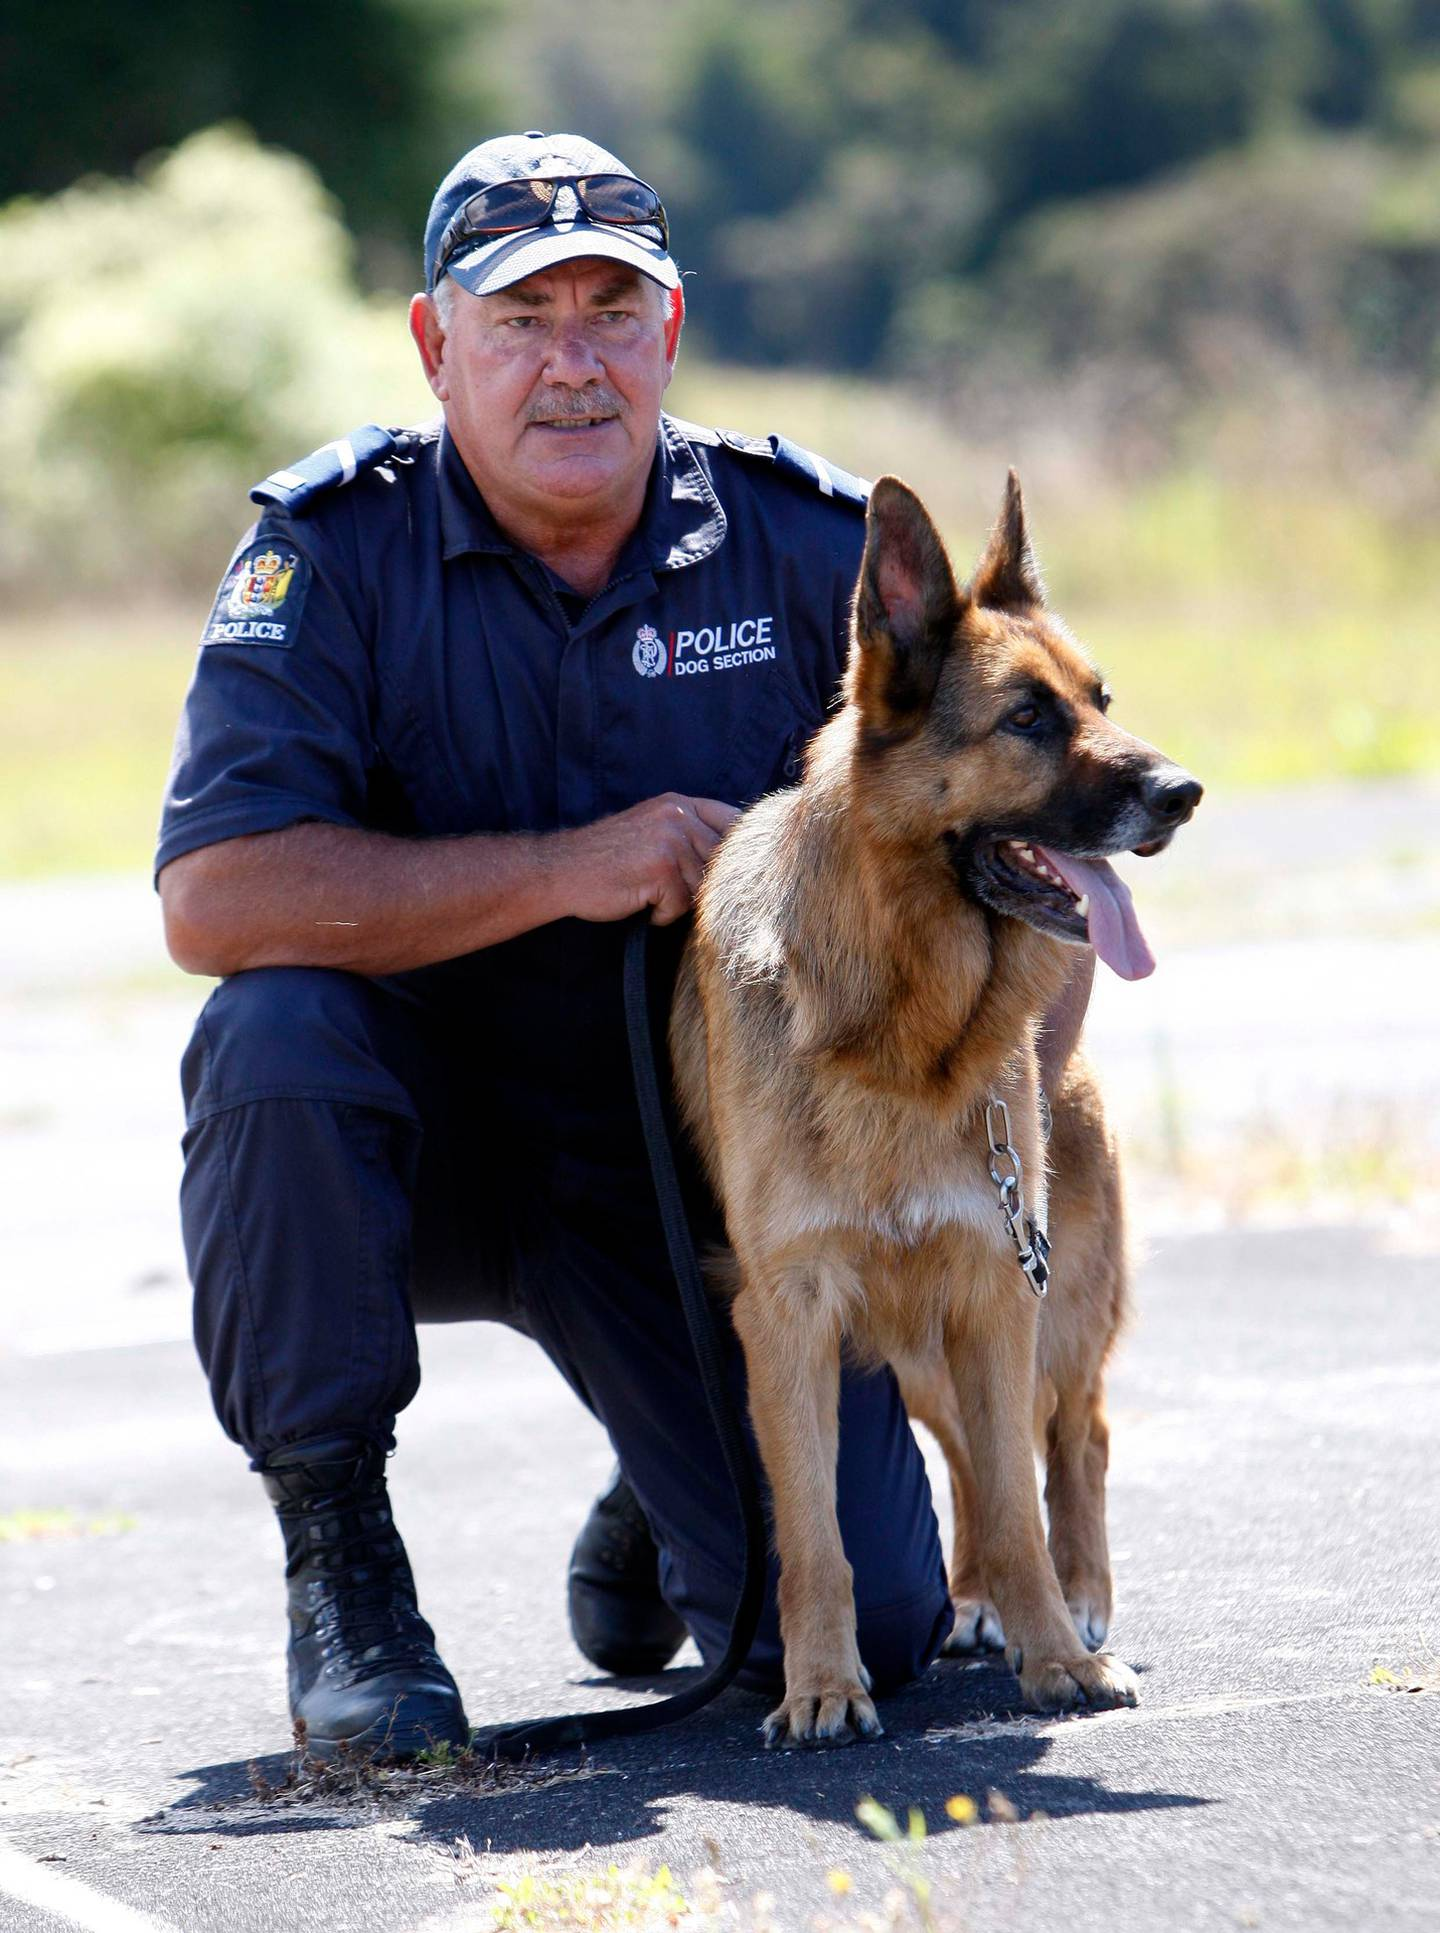 Senior Constable Ross Clarke and detector dog Archie in 2013. Photo: Michael Cunningham